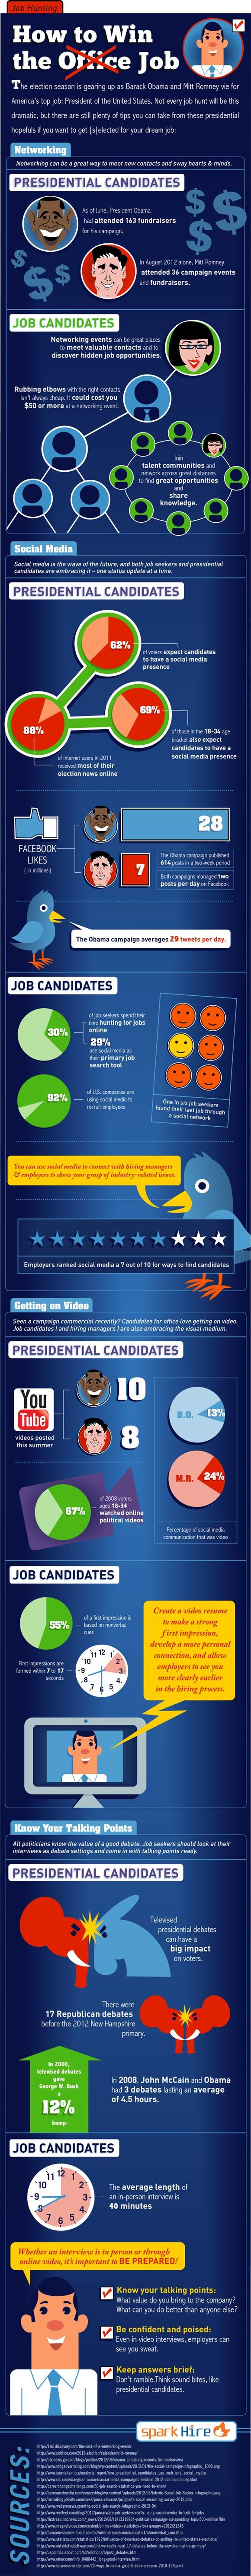 guerrilla job hunting how to treat your job hunt like the presidential campaign infographic business insider